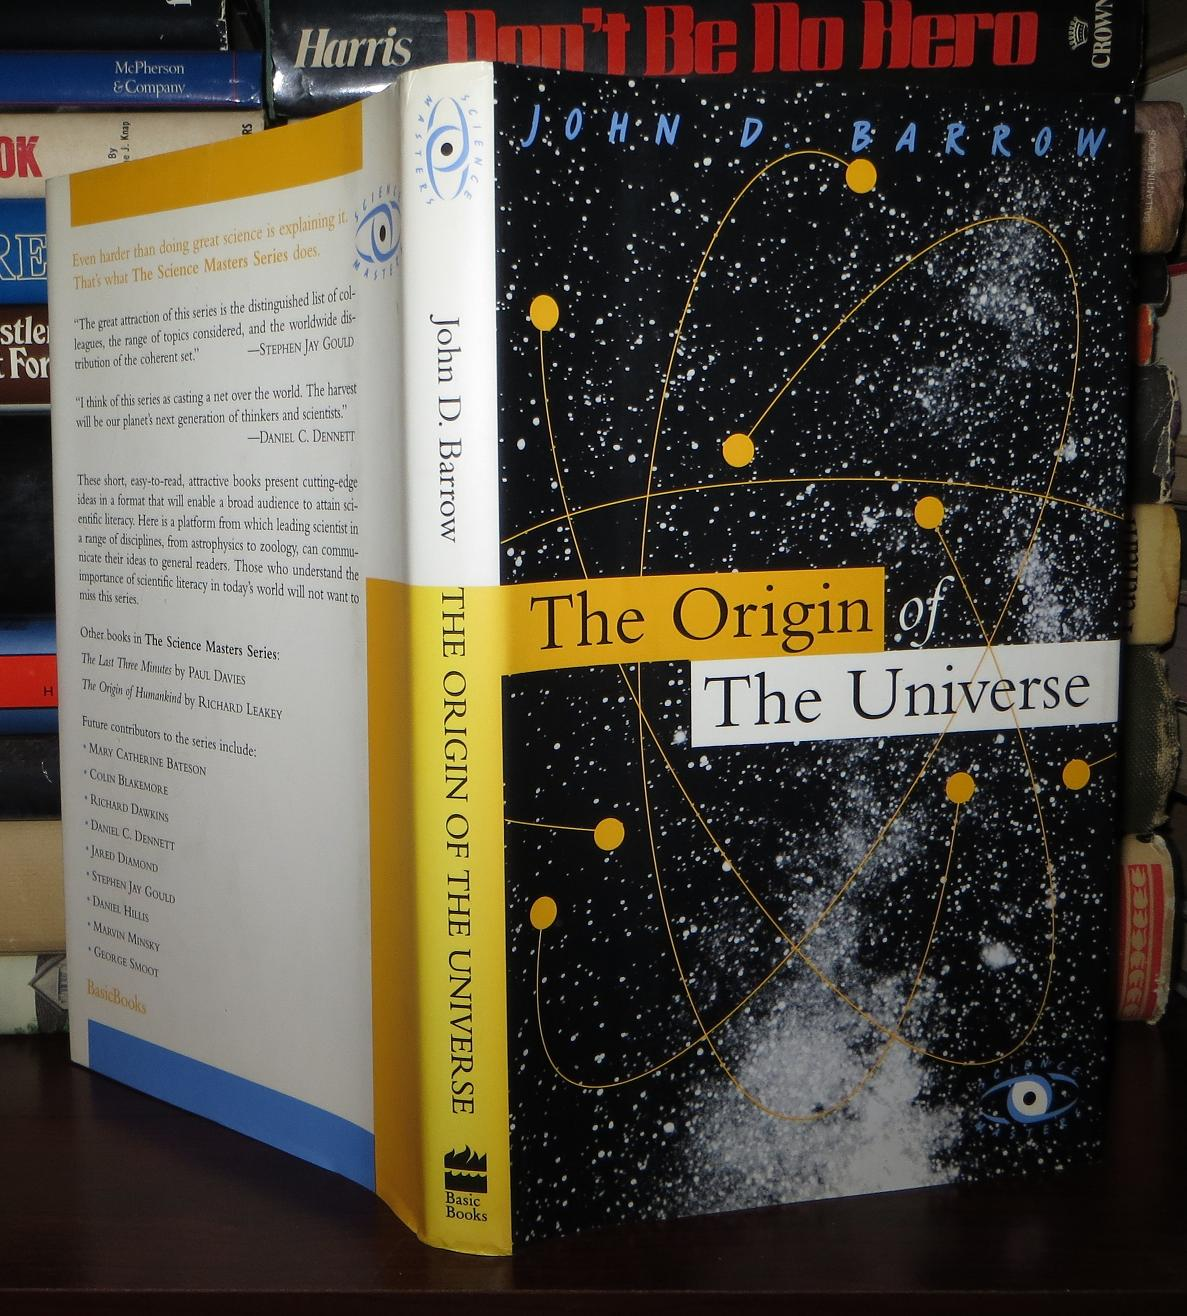 Barrow John D The Origin Of The Universe 1st Edition 1st